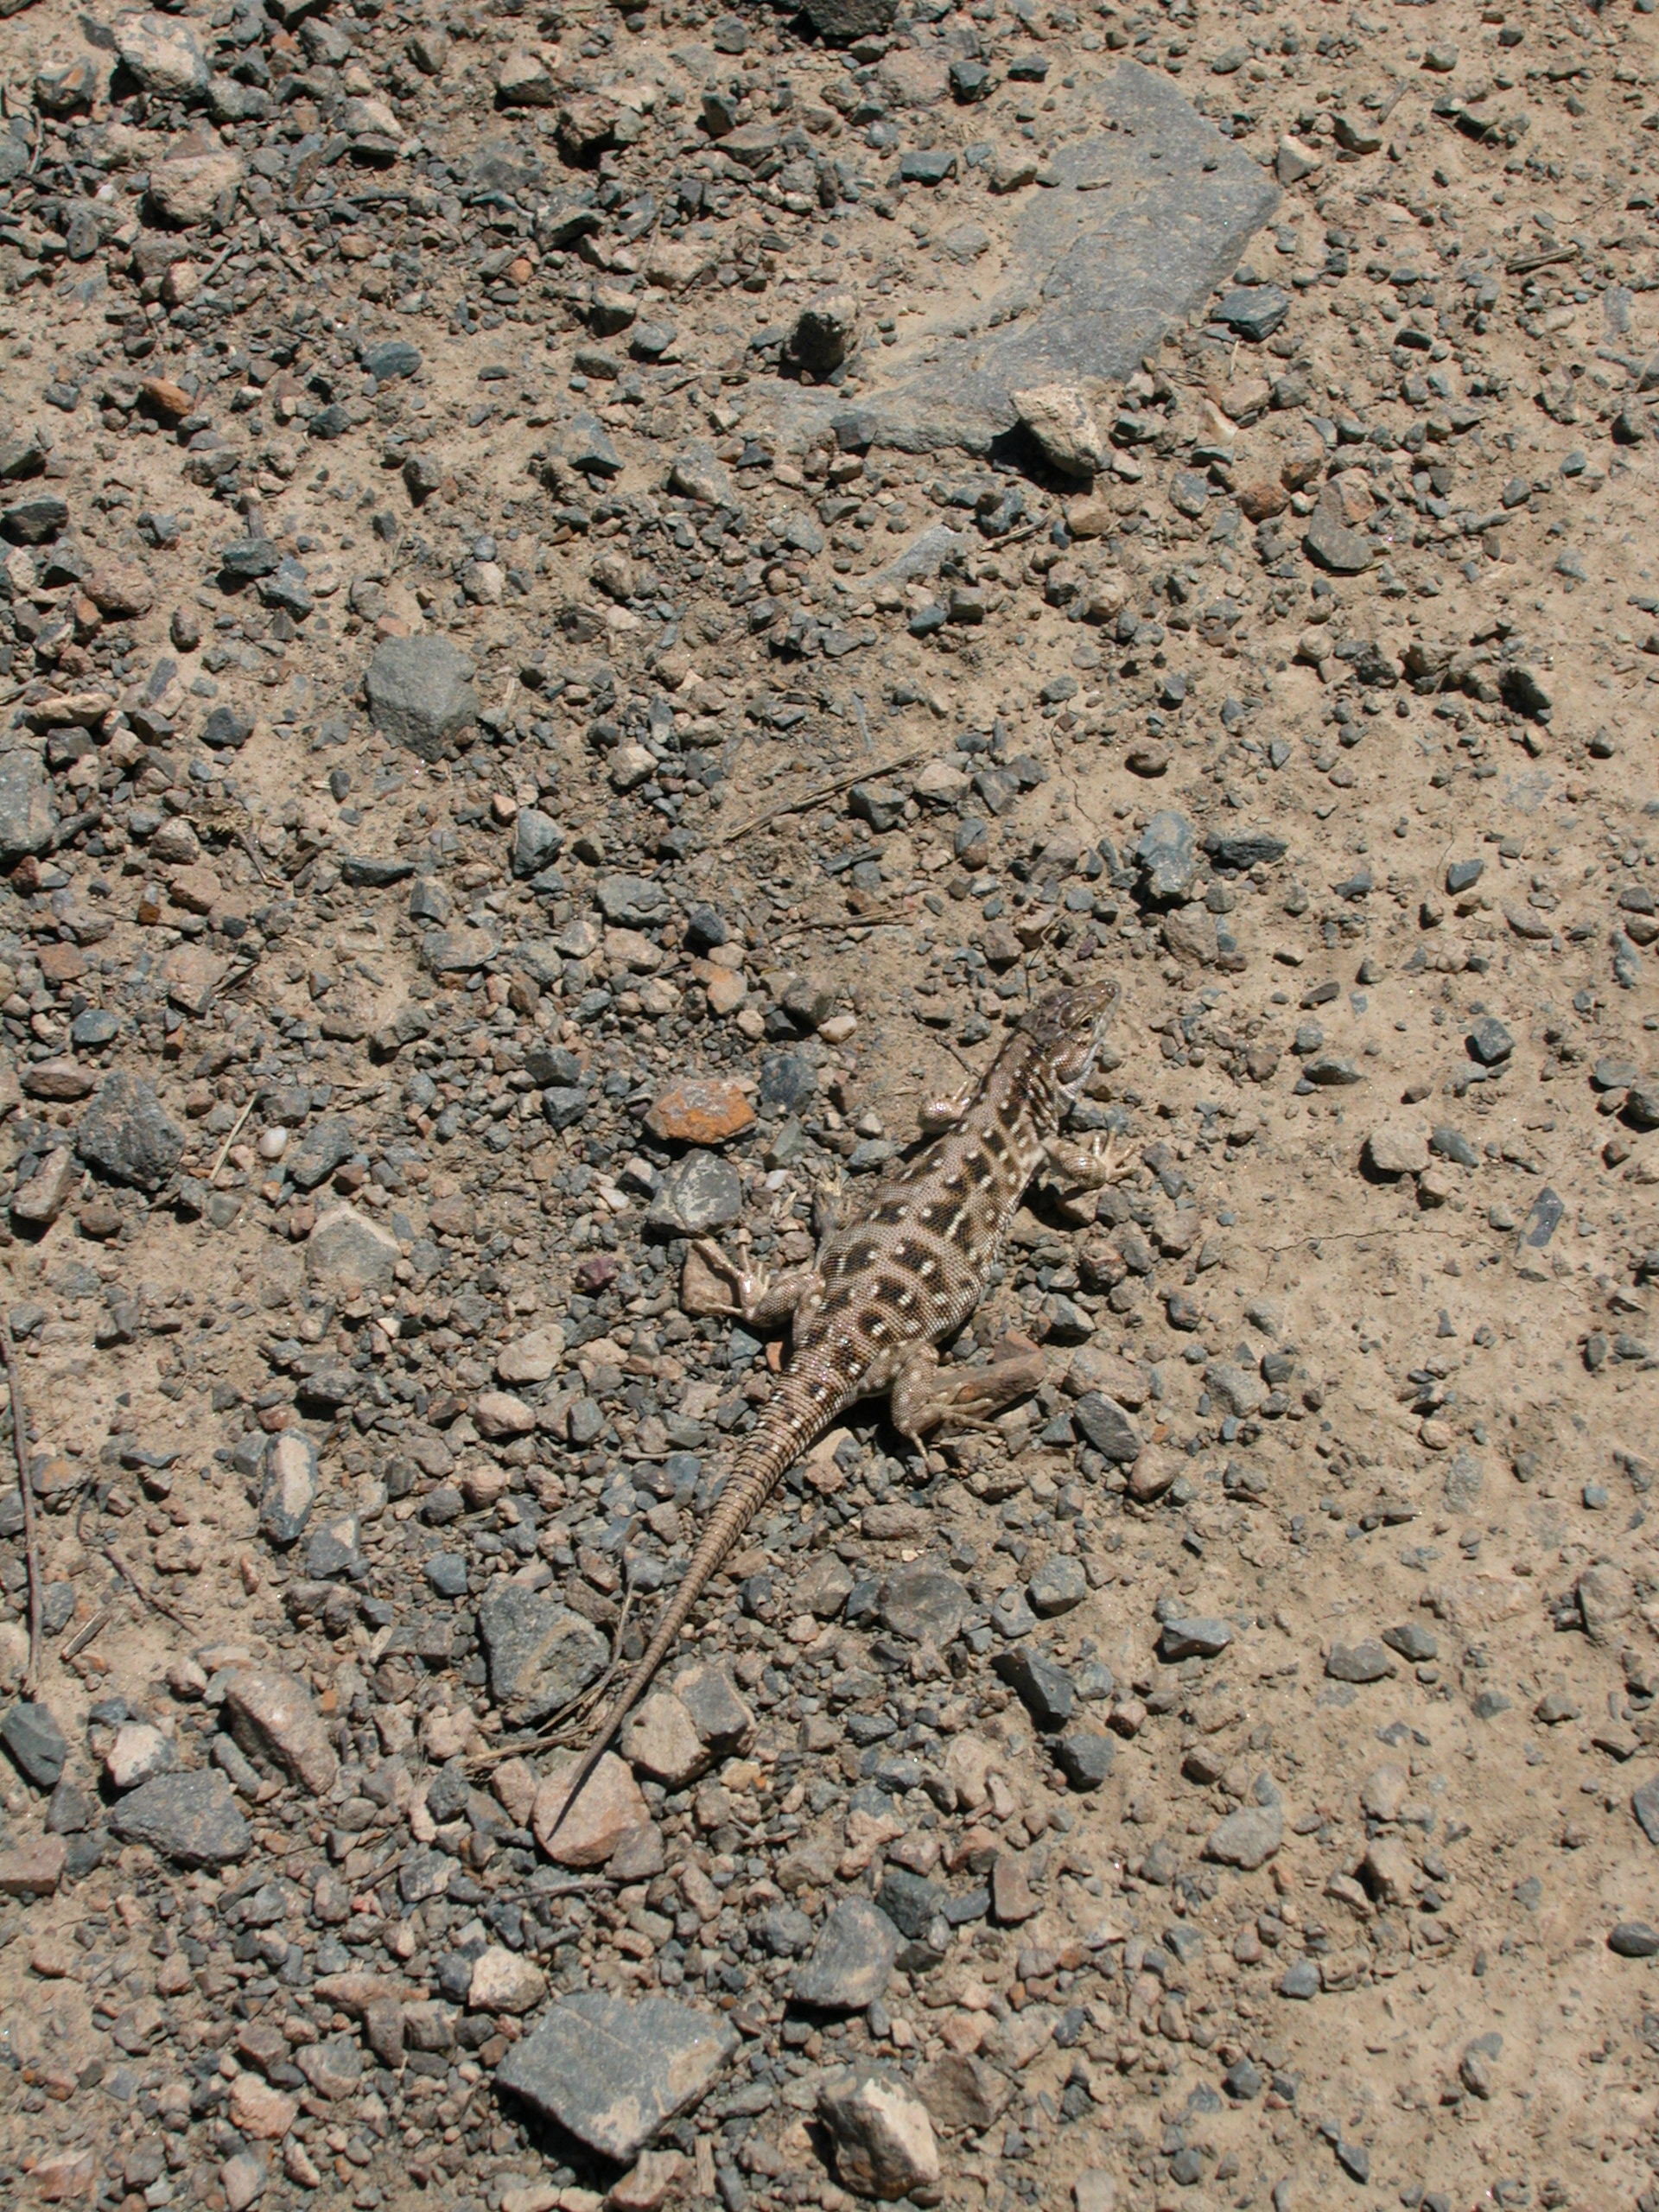 Lizard of the steppes.